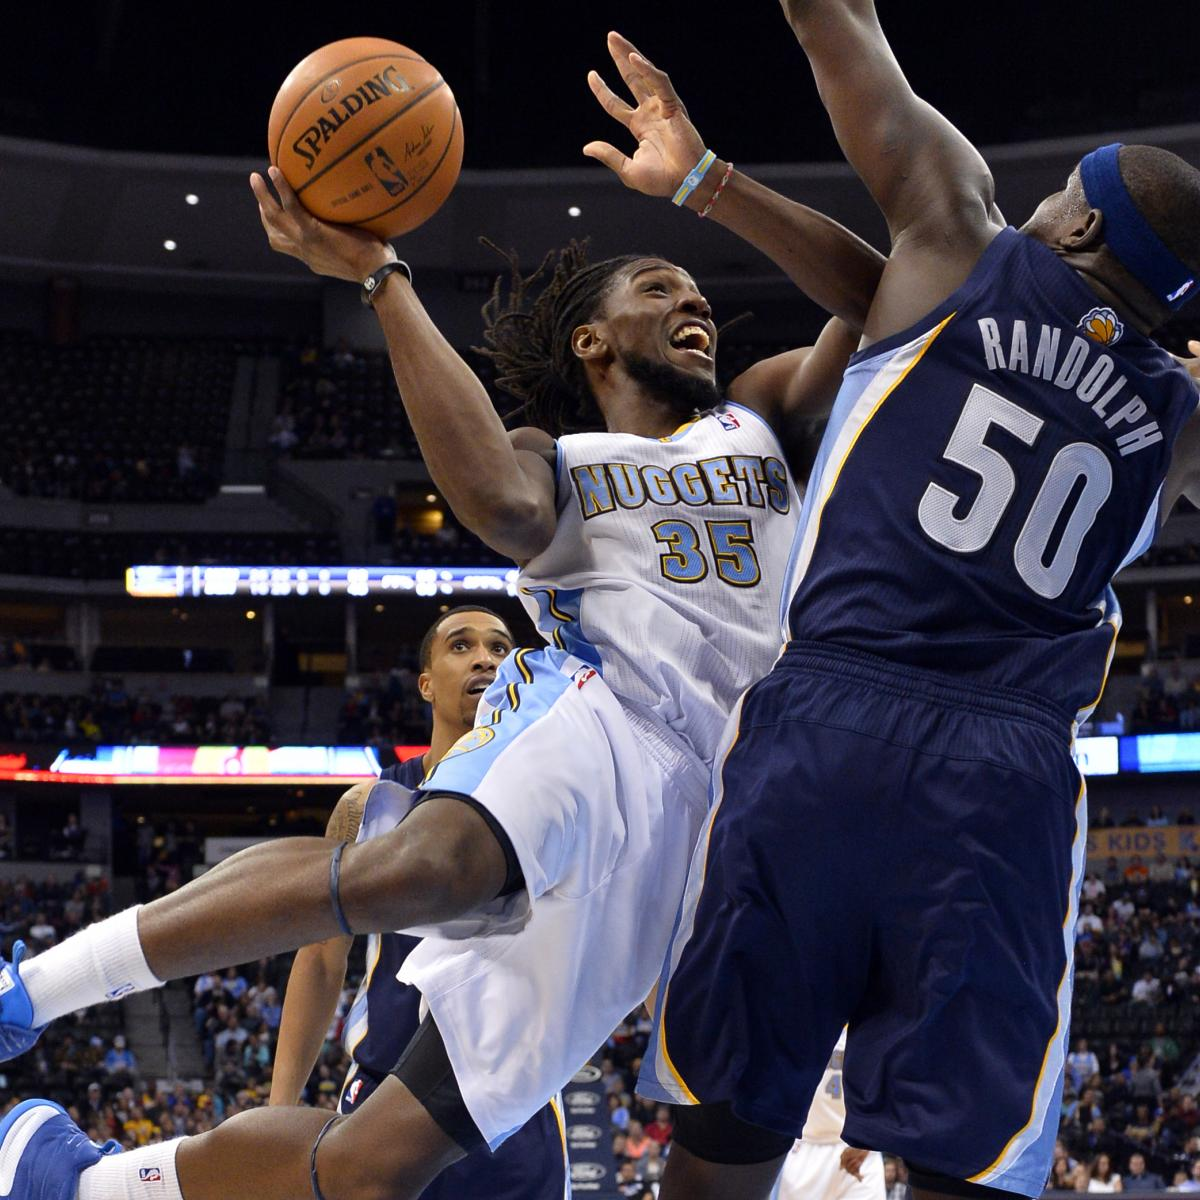 NBA Says Referees Erred On Pivotal Final Call In Grizzlies